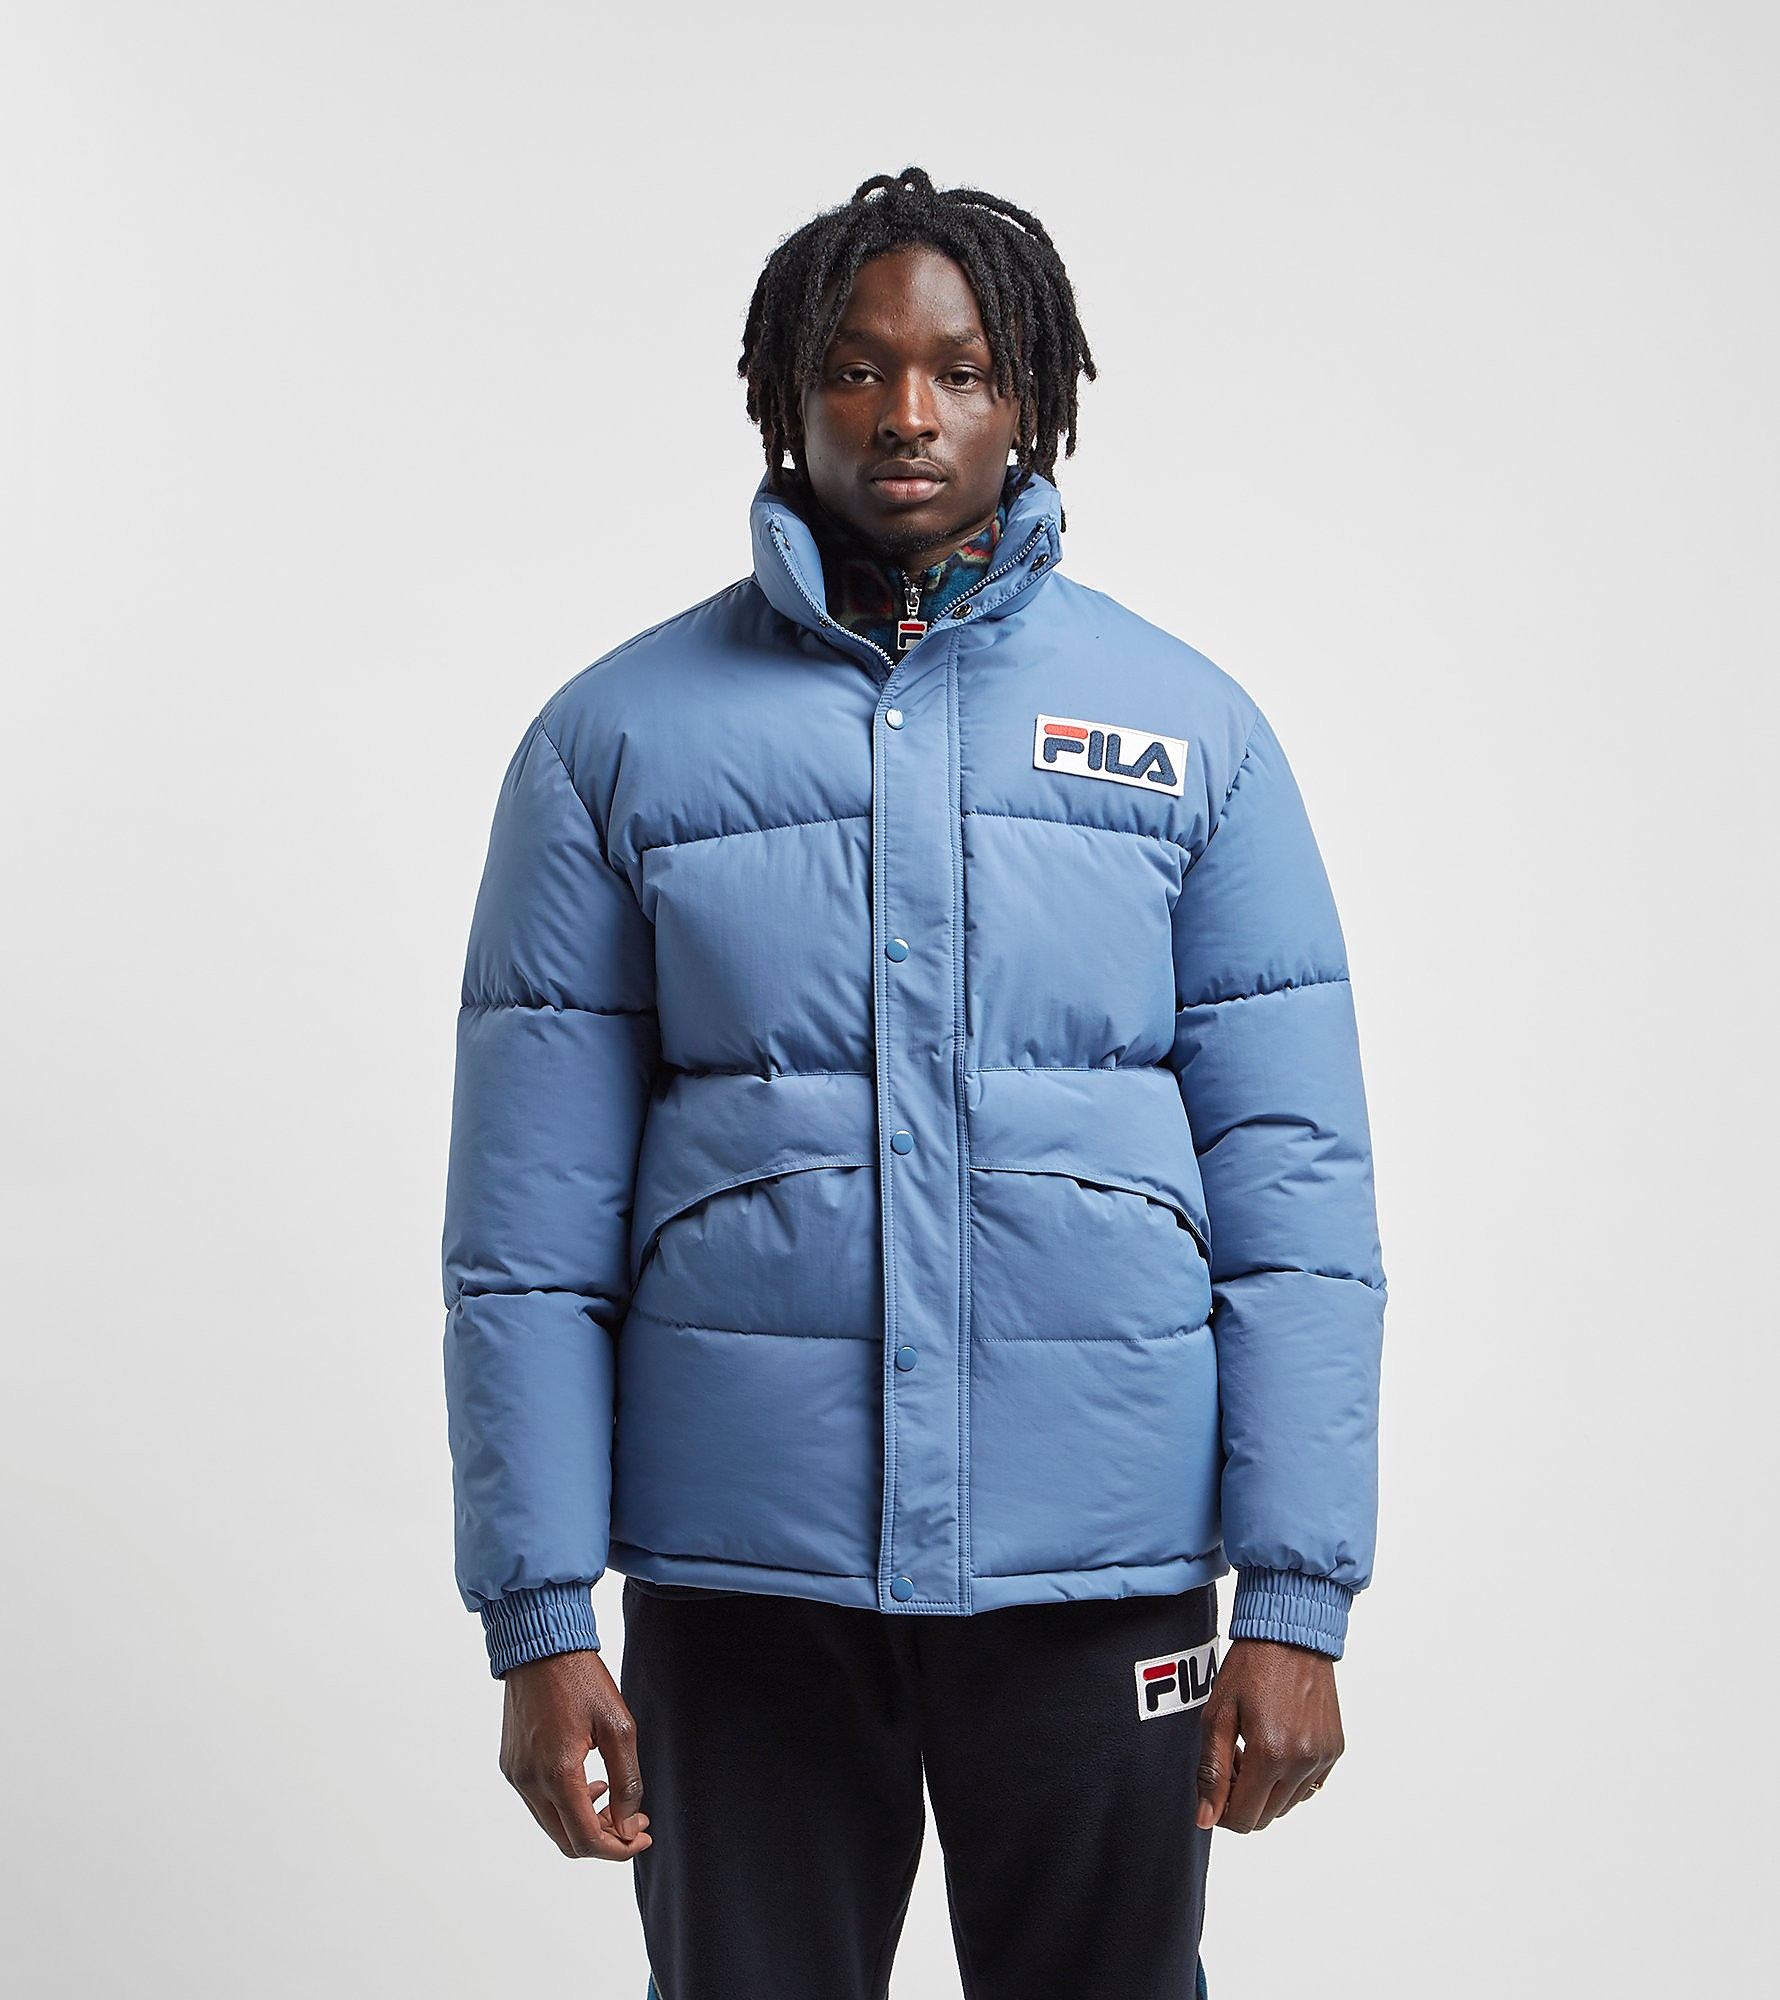 Fila Nanga Jacket - size? Exclusive, Celeste